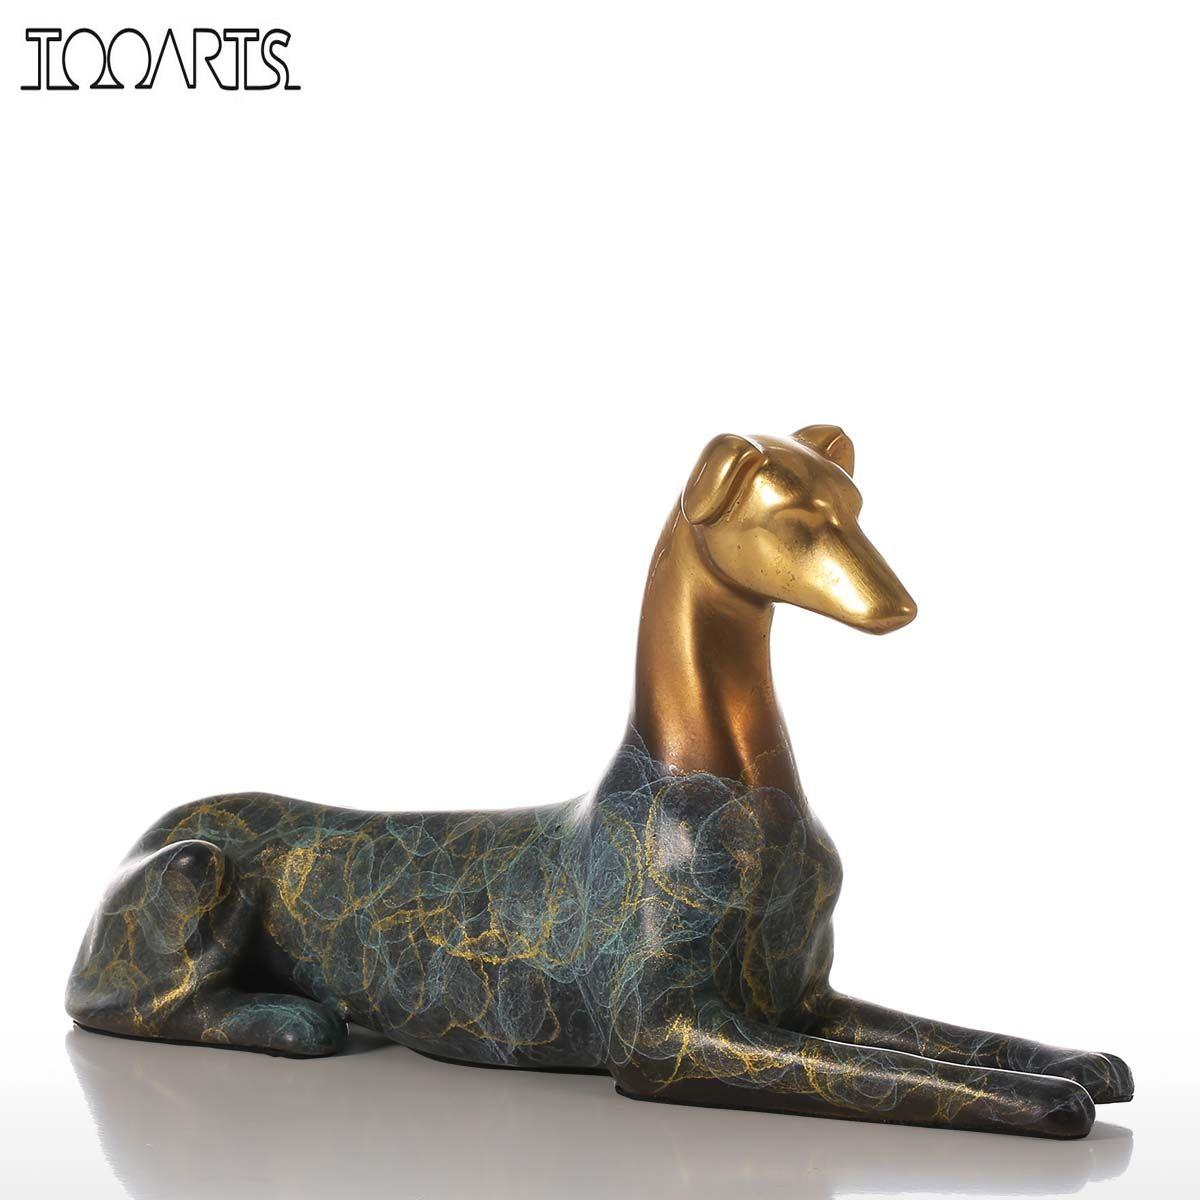 Tooarts Hound Dog Handmade Bronze Sculpture Modern Art